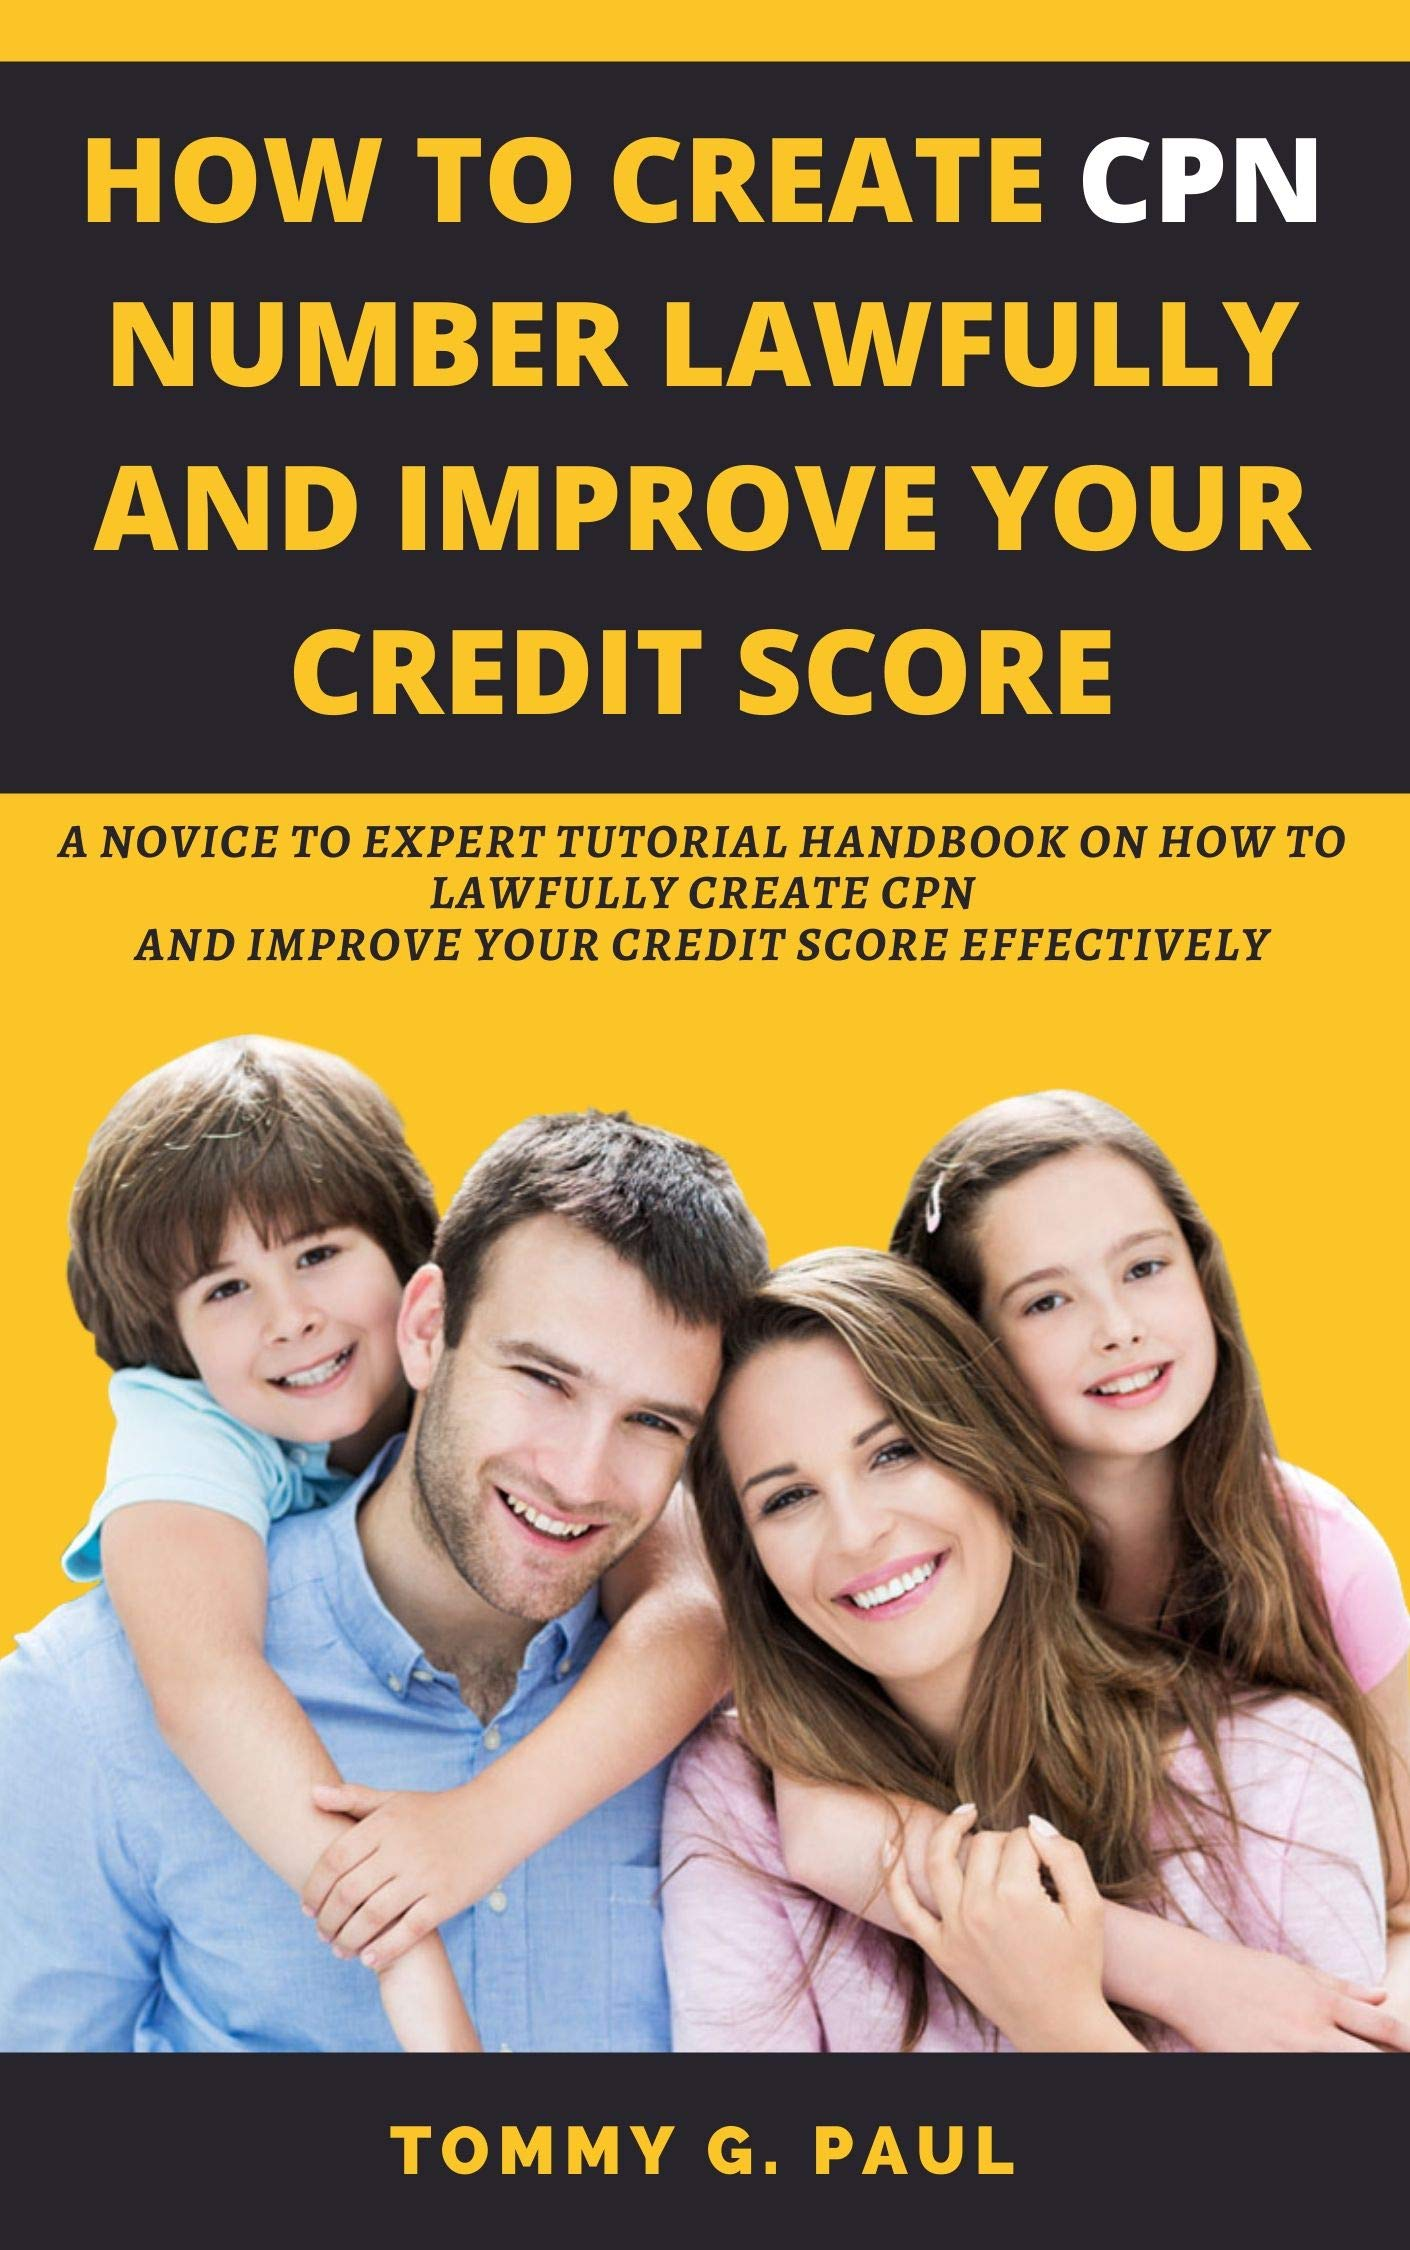 HOW TO CREATE CPN NUMBERS LAWFULLY AND IMPROVE YOUR CREDIT SCORE: A Novice to Expert Tutorial Handbook on How to Lawfully Create CPN and Improve Your Credit Score Effectively